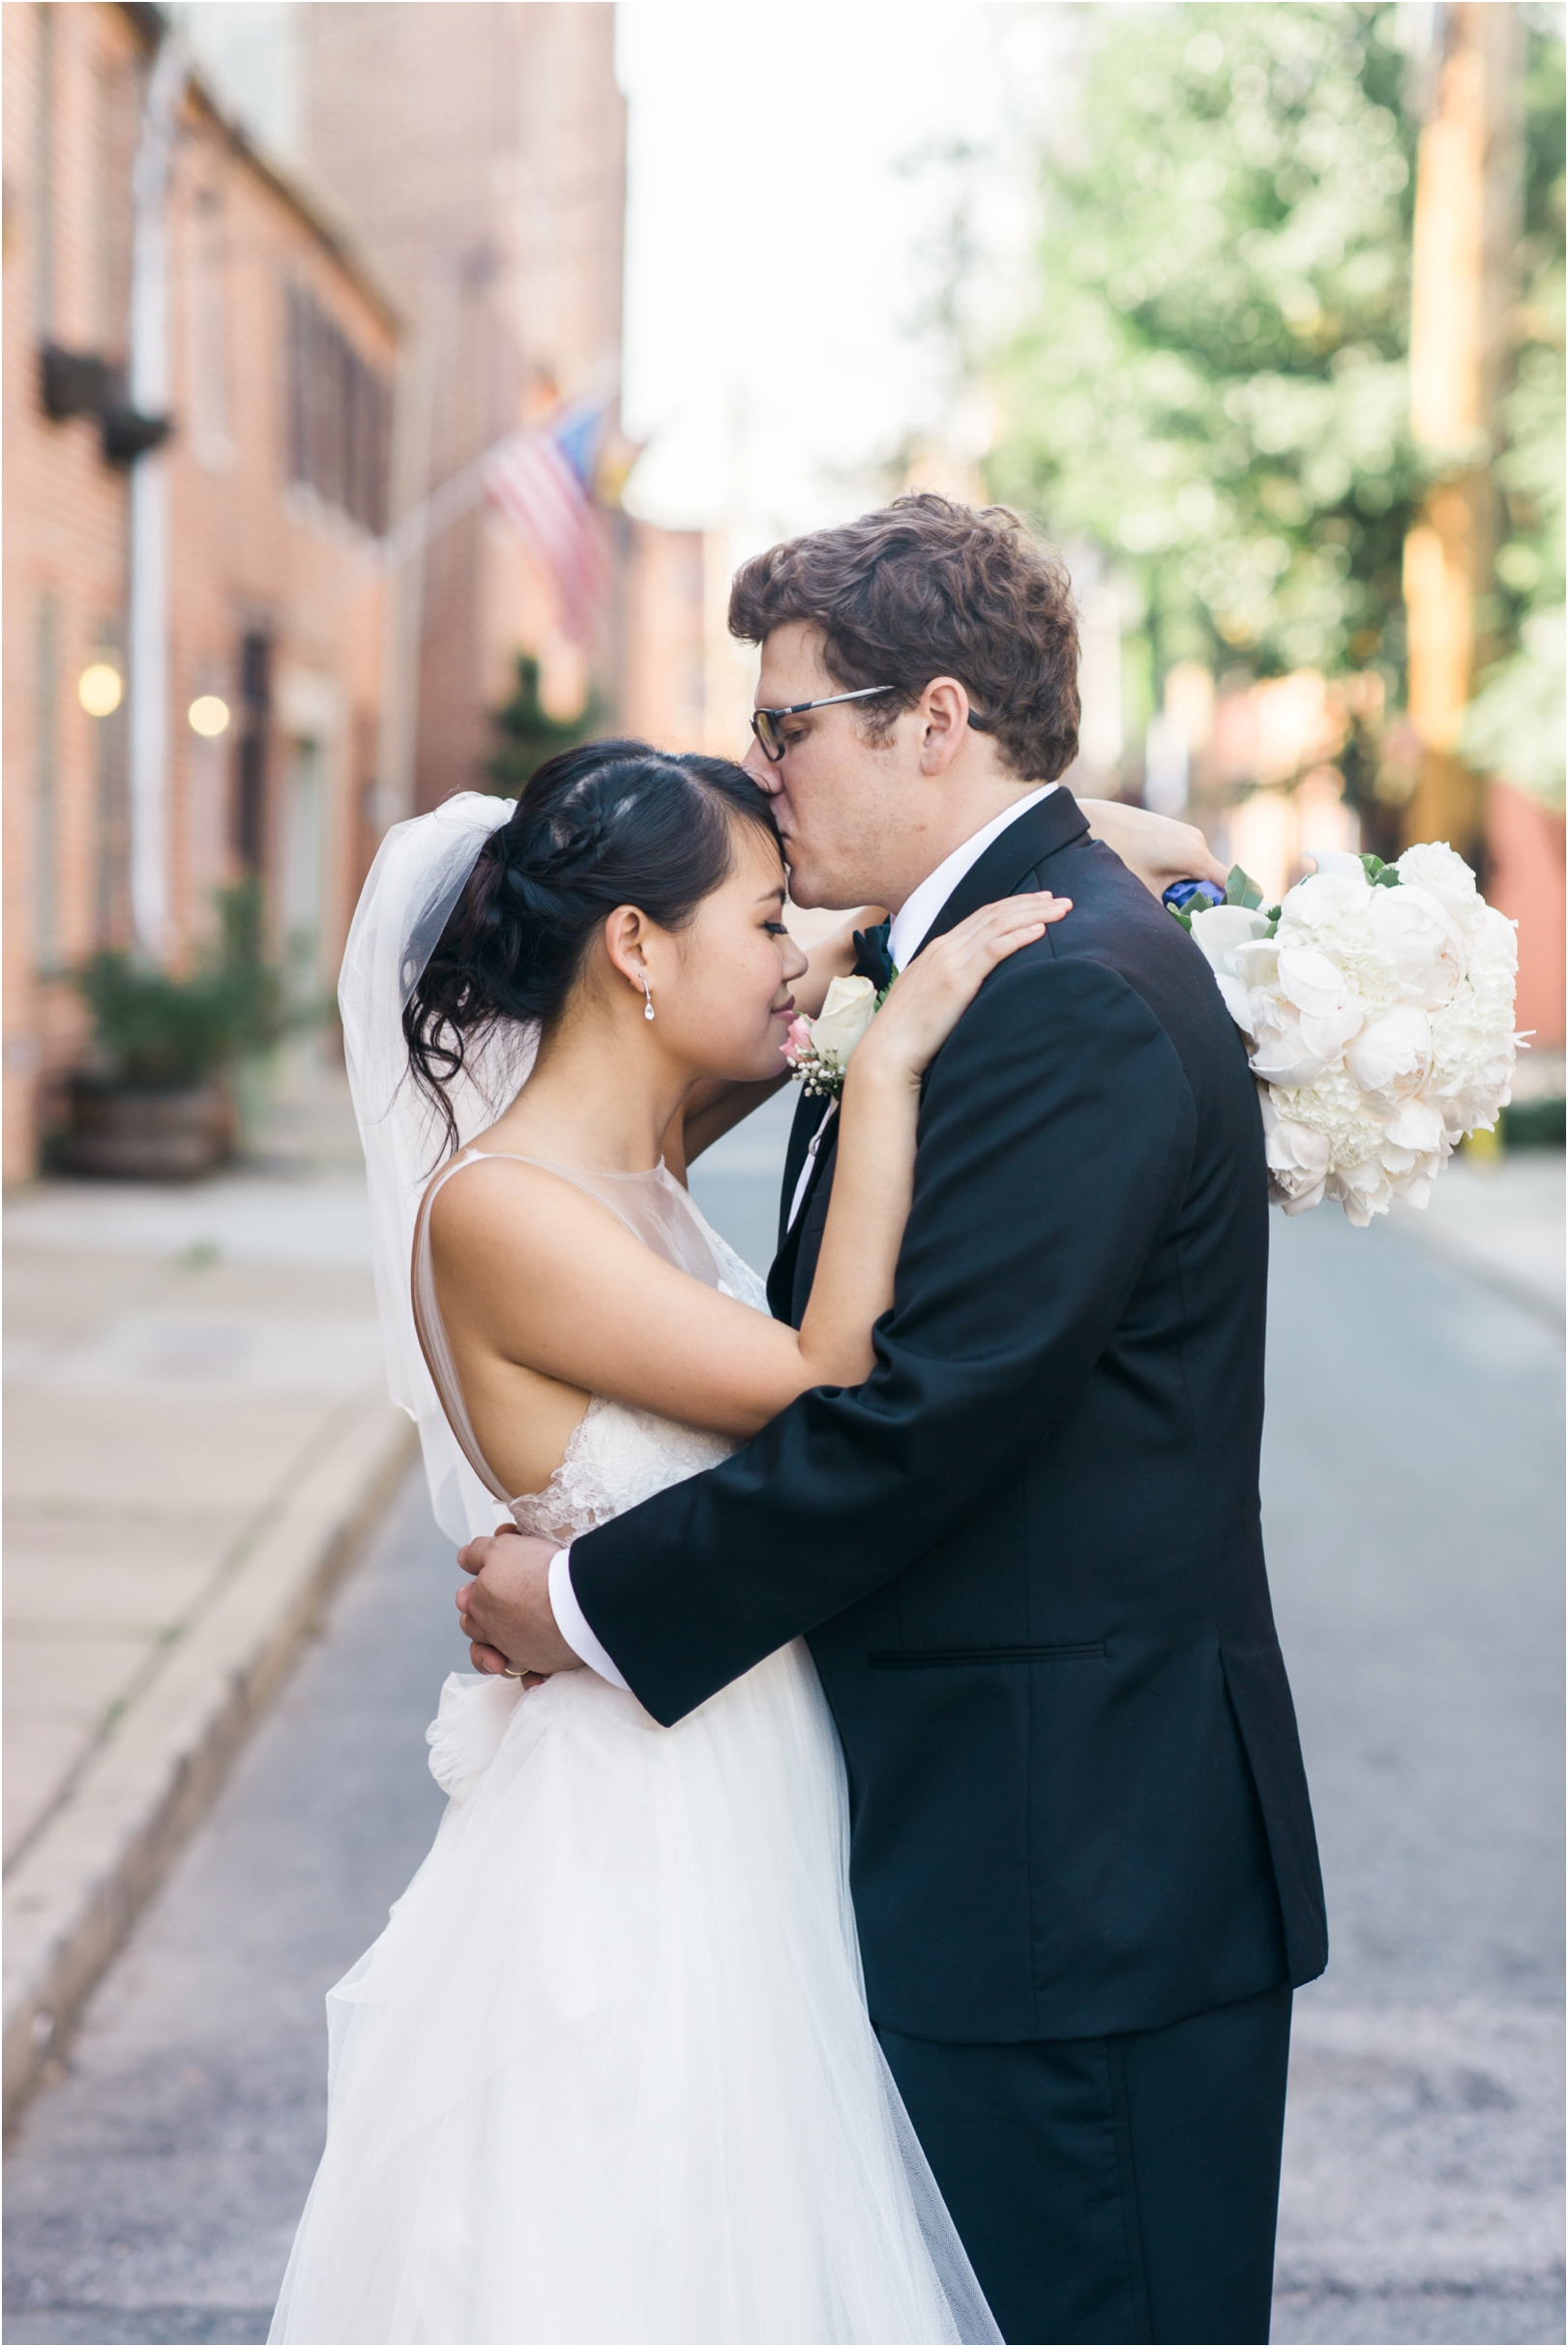 What real life grooms think of the first look